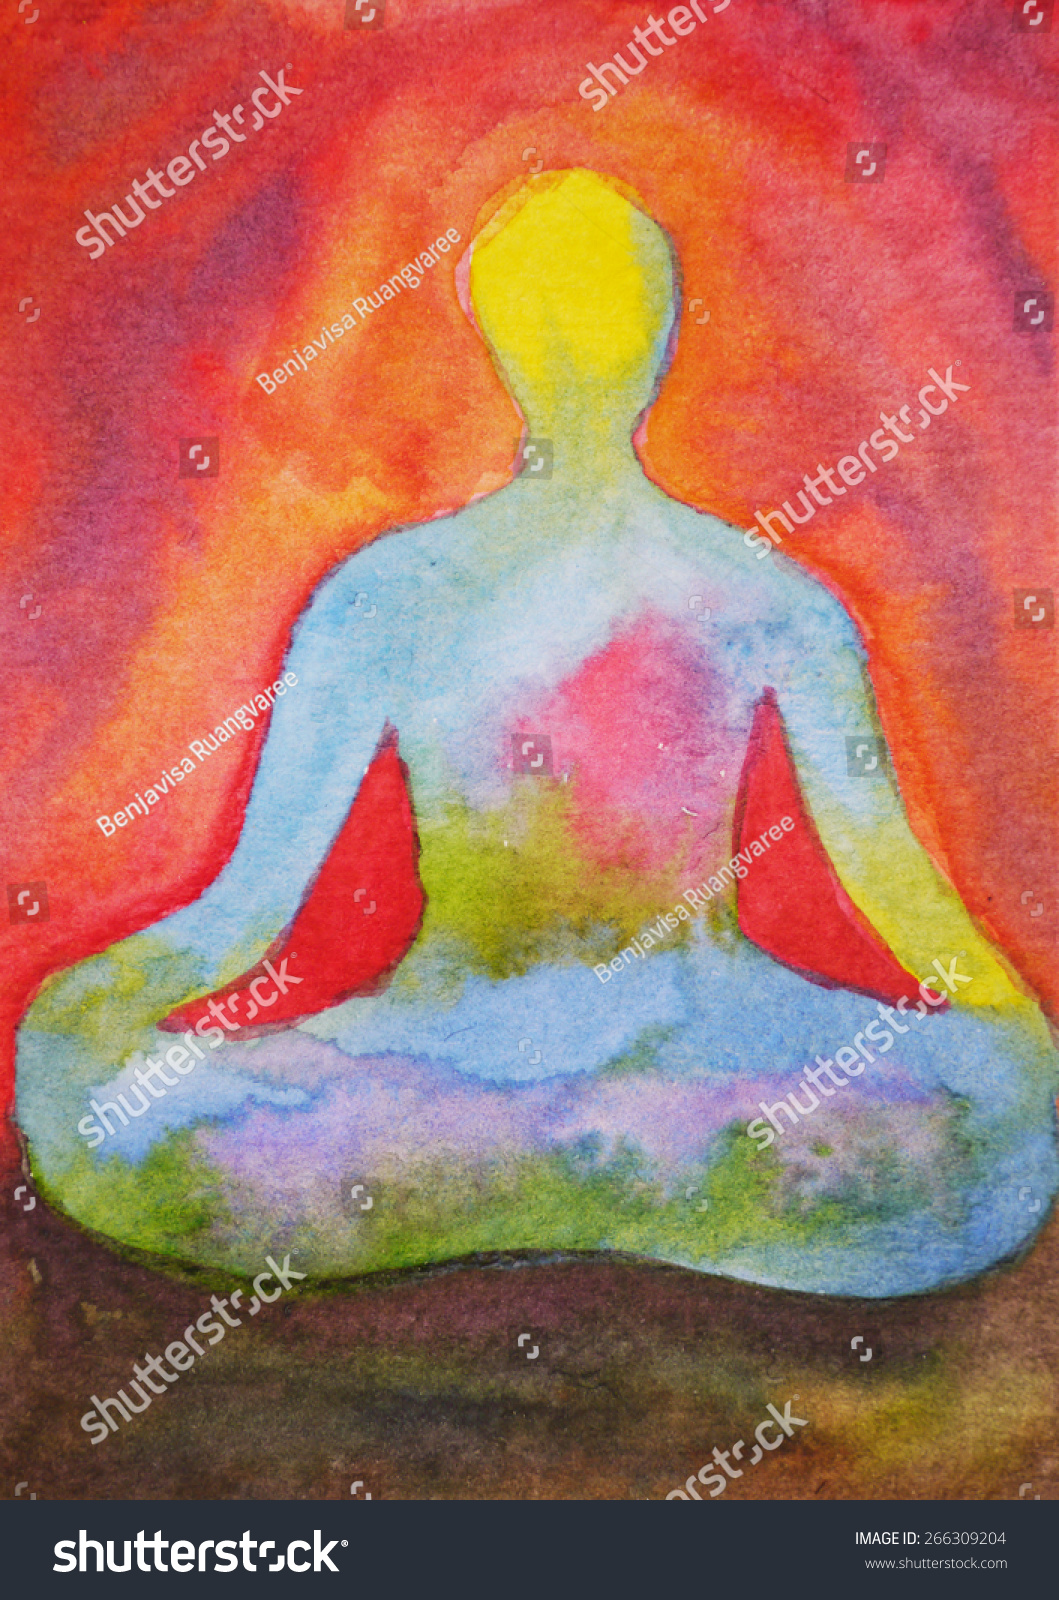 Lotus pose yoga watercolor painting abstract aura power full background